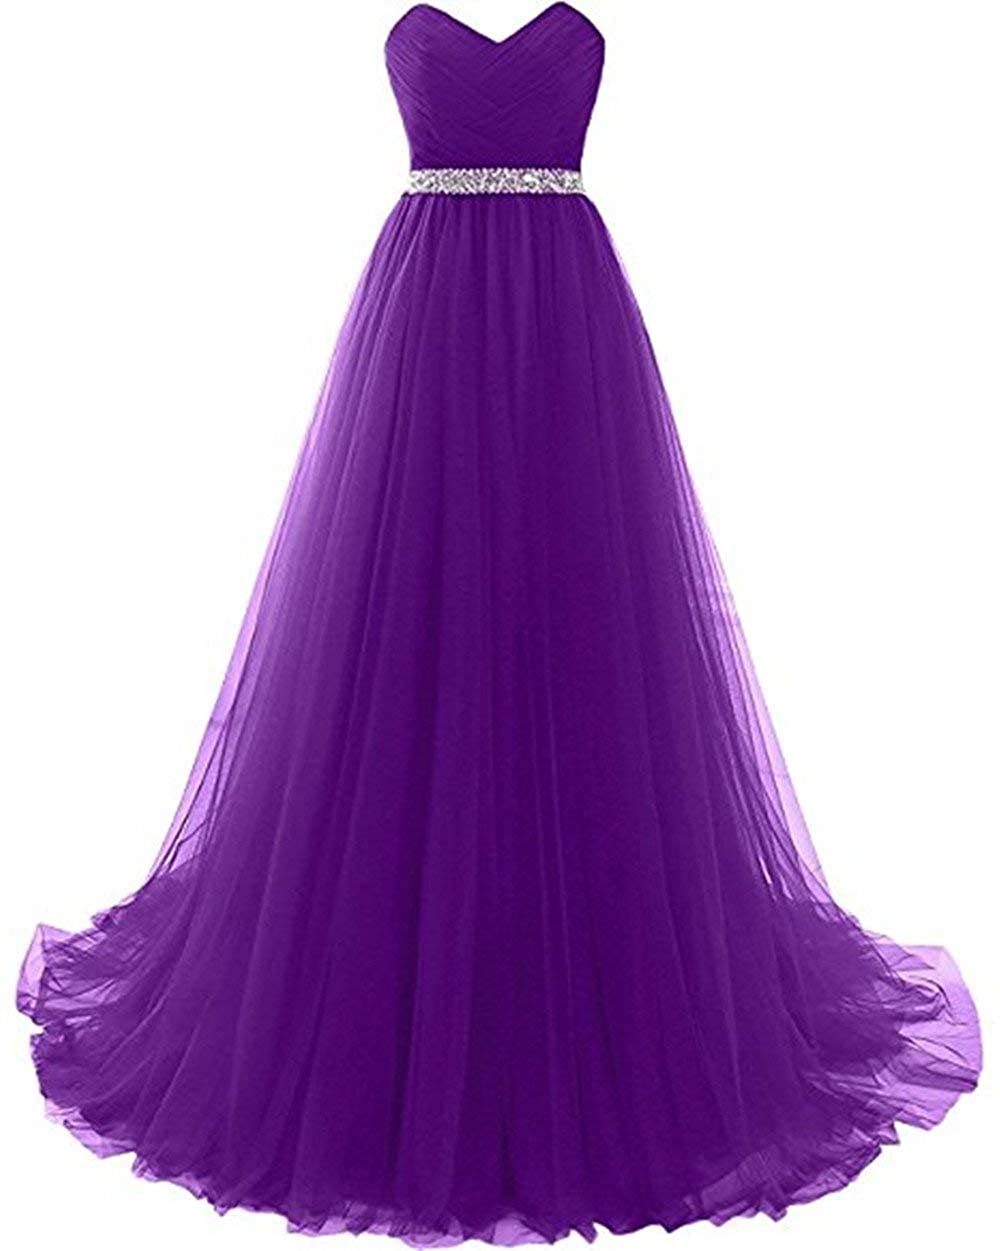 Purple Liaoye Women's Long Sweetheart Beaded Prom Dresses Tulle Evening Ball Gown Homecoming Dress